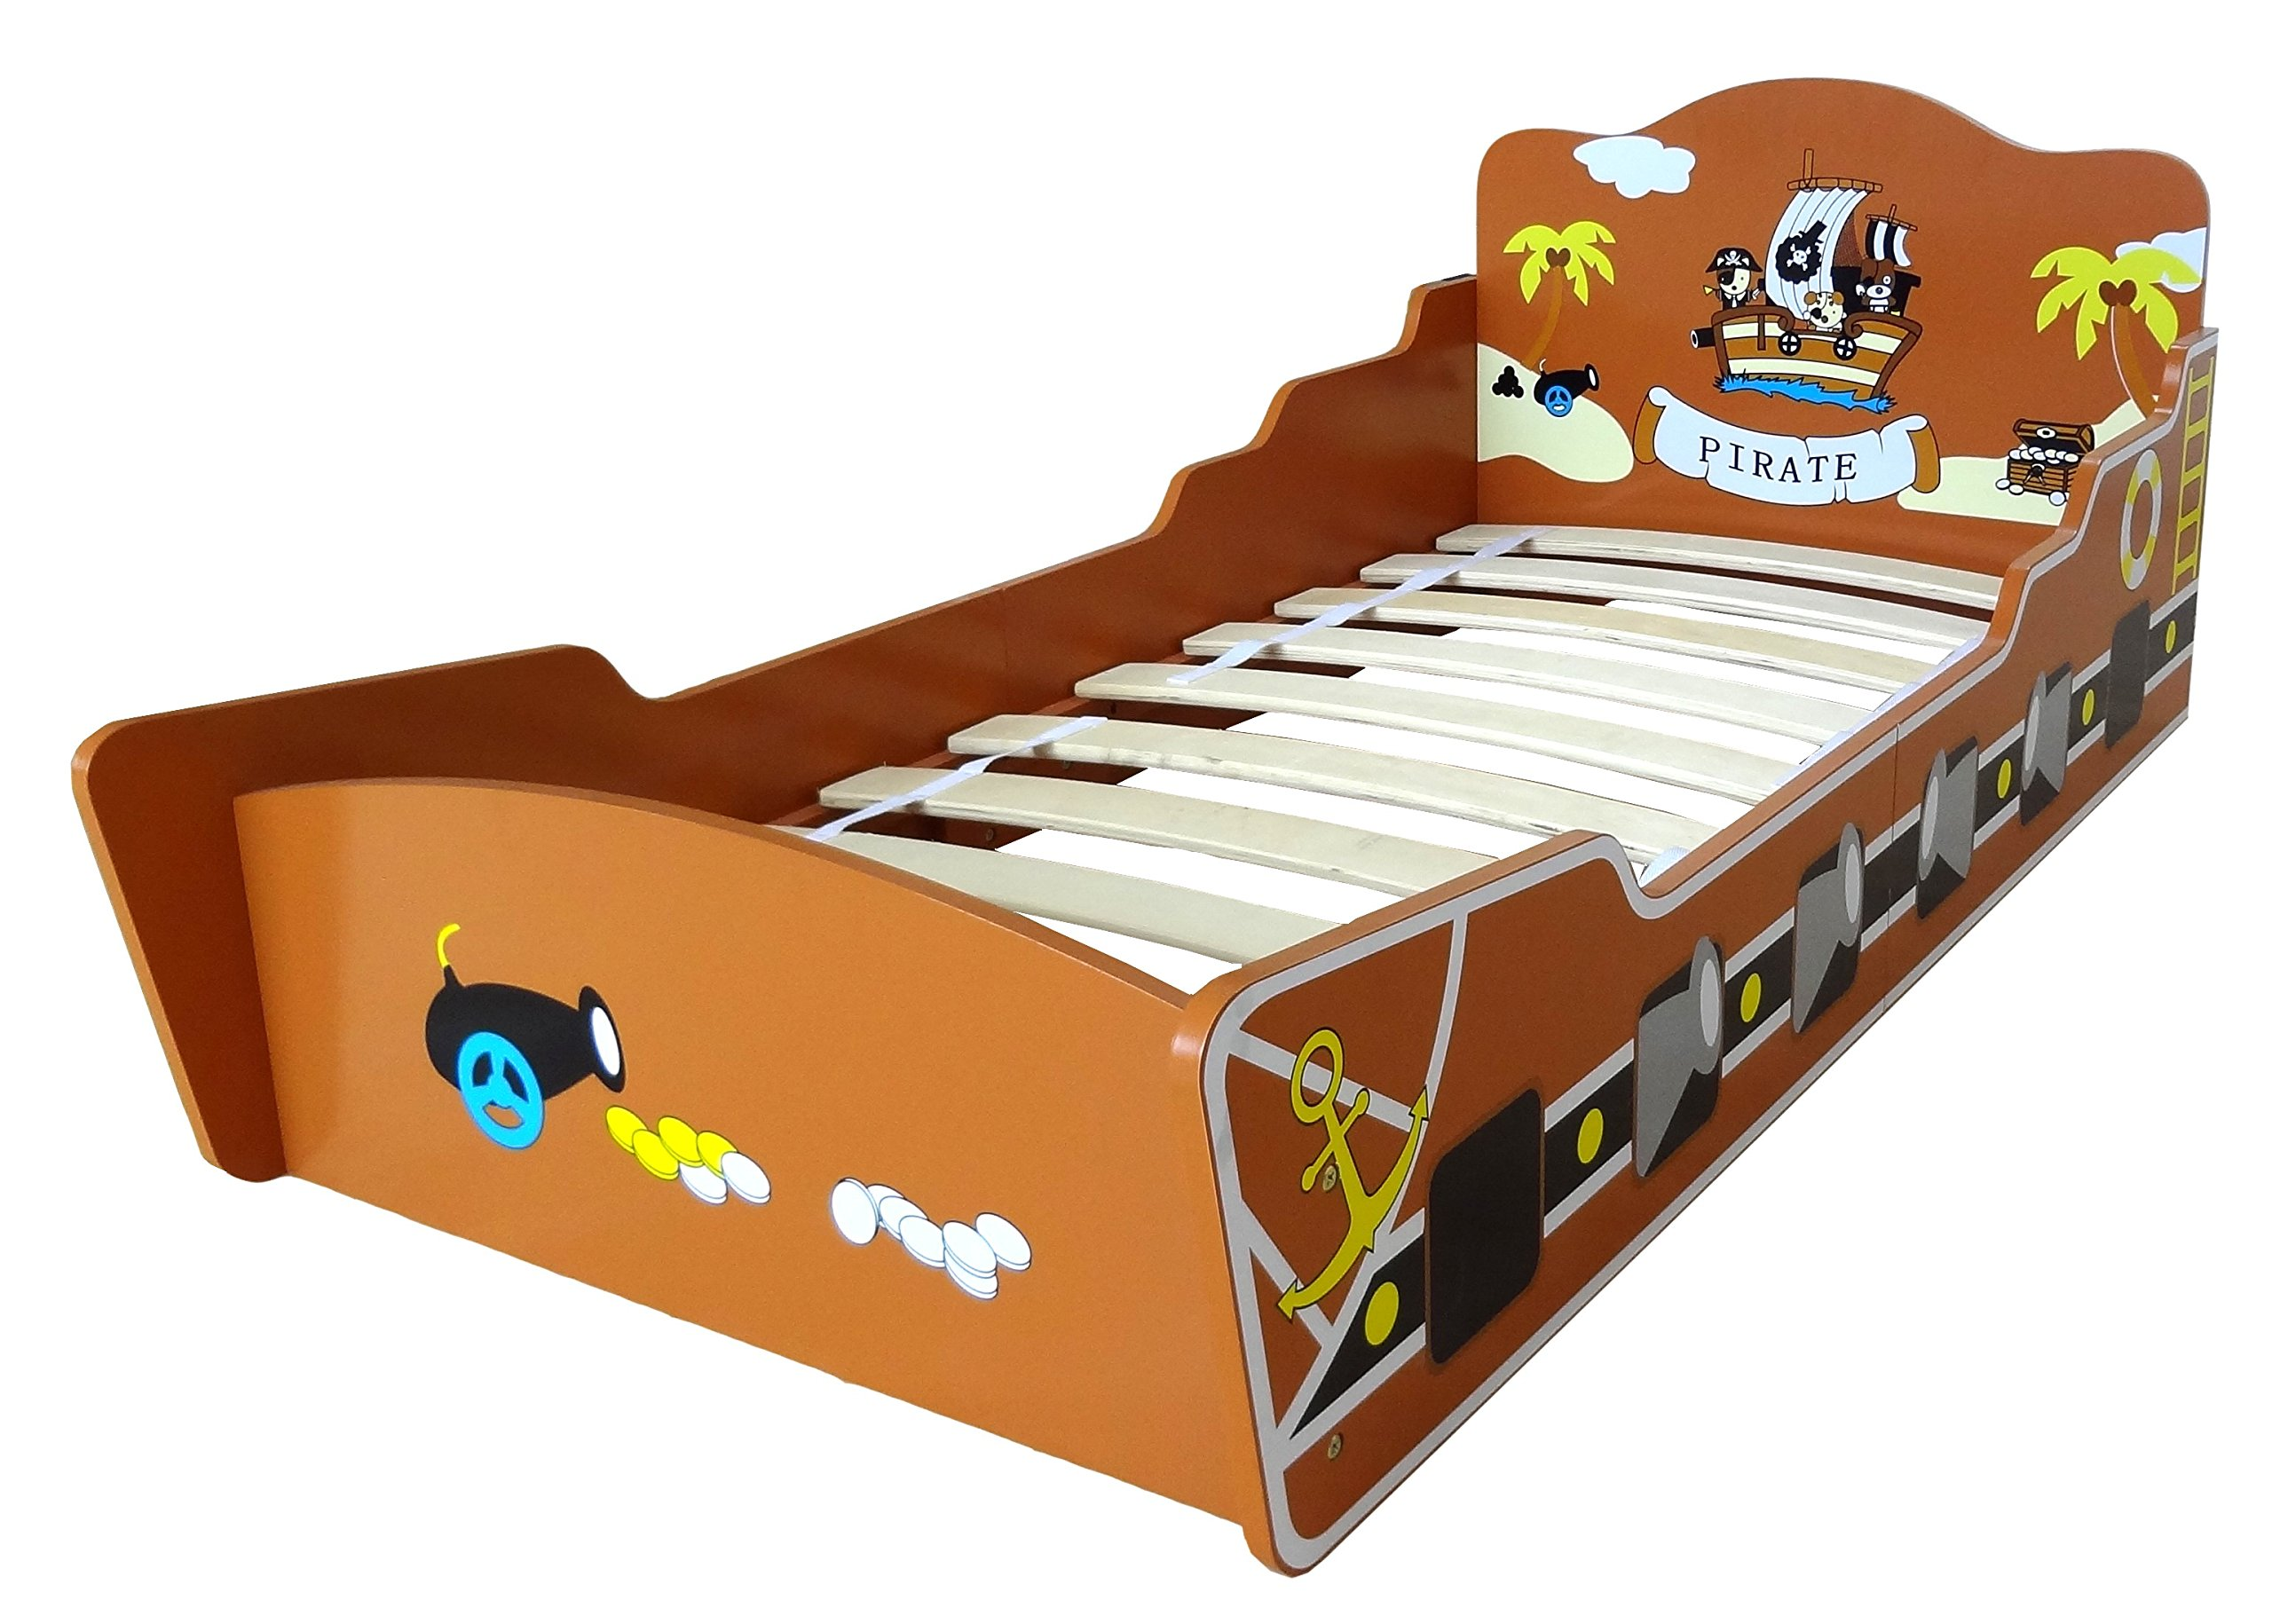 Kiddi Style Children's Pirate Ship/Boat Wooden Junior Bed Kiddi Style Fun pirate themed boat / ship Junior Bed Wood - Fun pirate themed set Easy to assemble 1